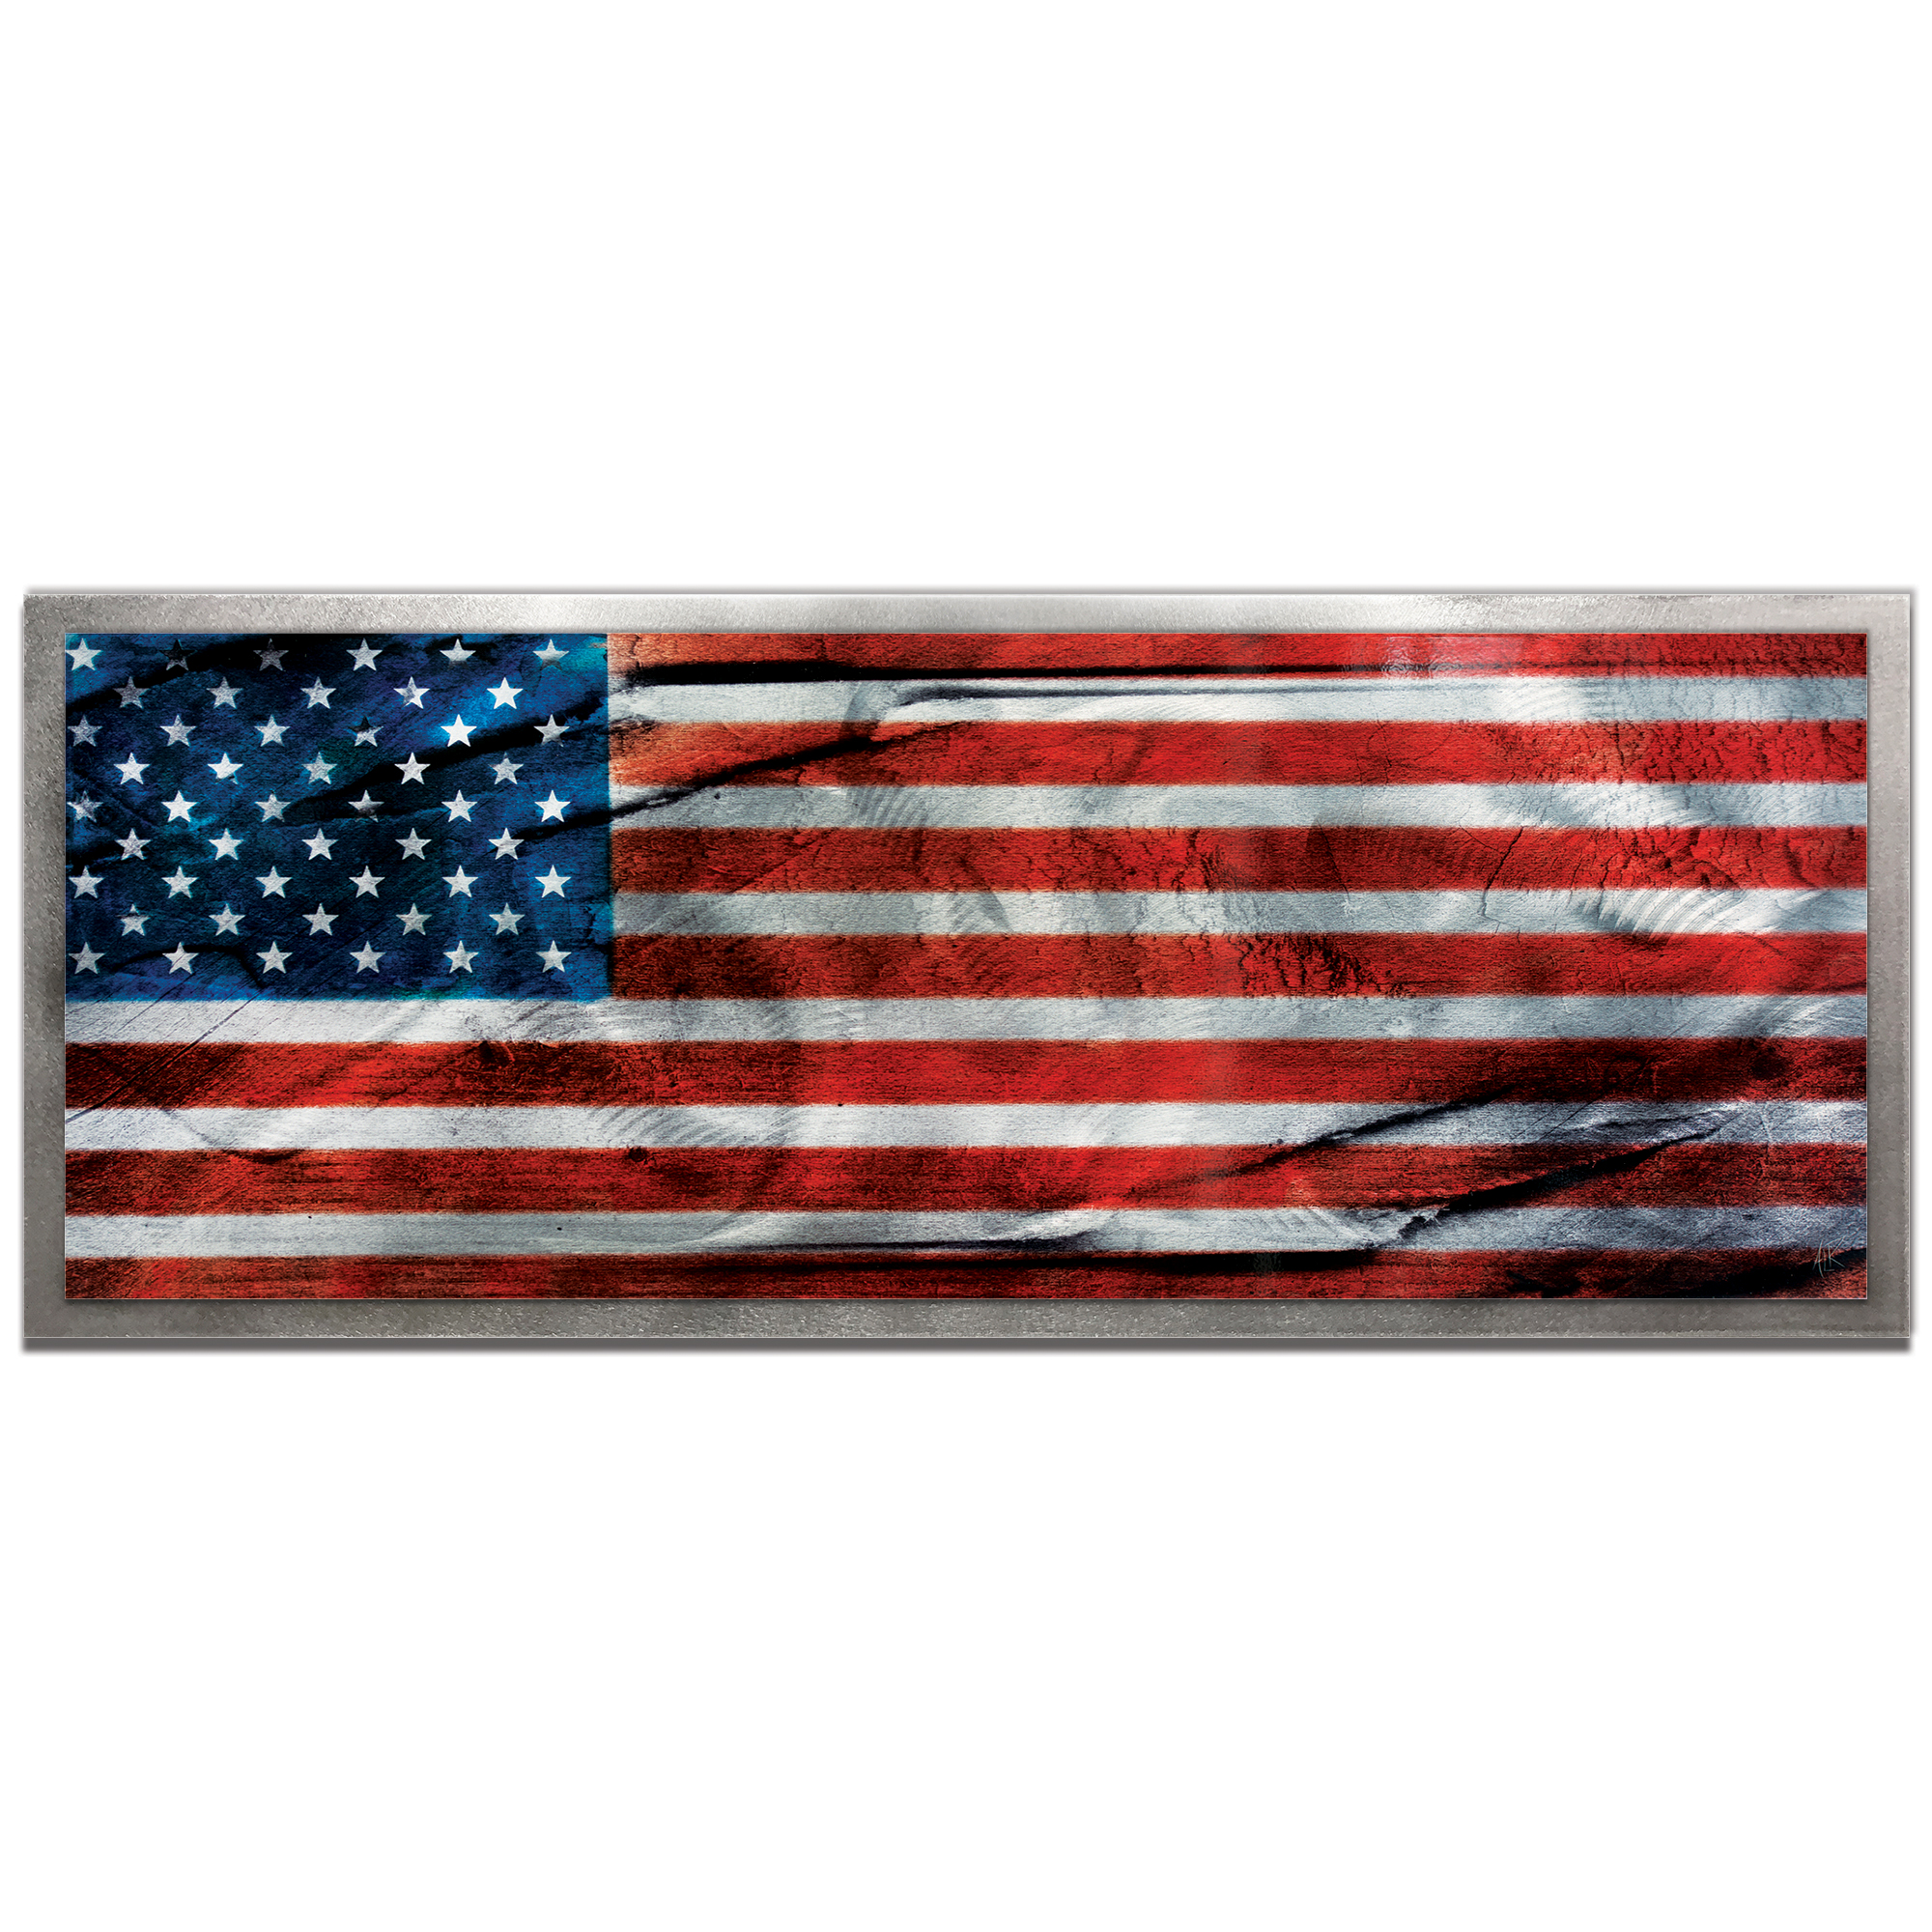 Amber LaRosa 'American Glory Framed' 48in x 19in Patriotic American Flag Art on Colored Metal